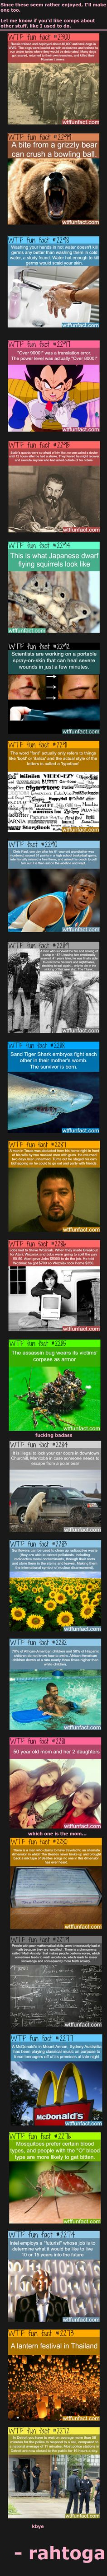 looong fun fact comp  - funny pictures #funnypictures